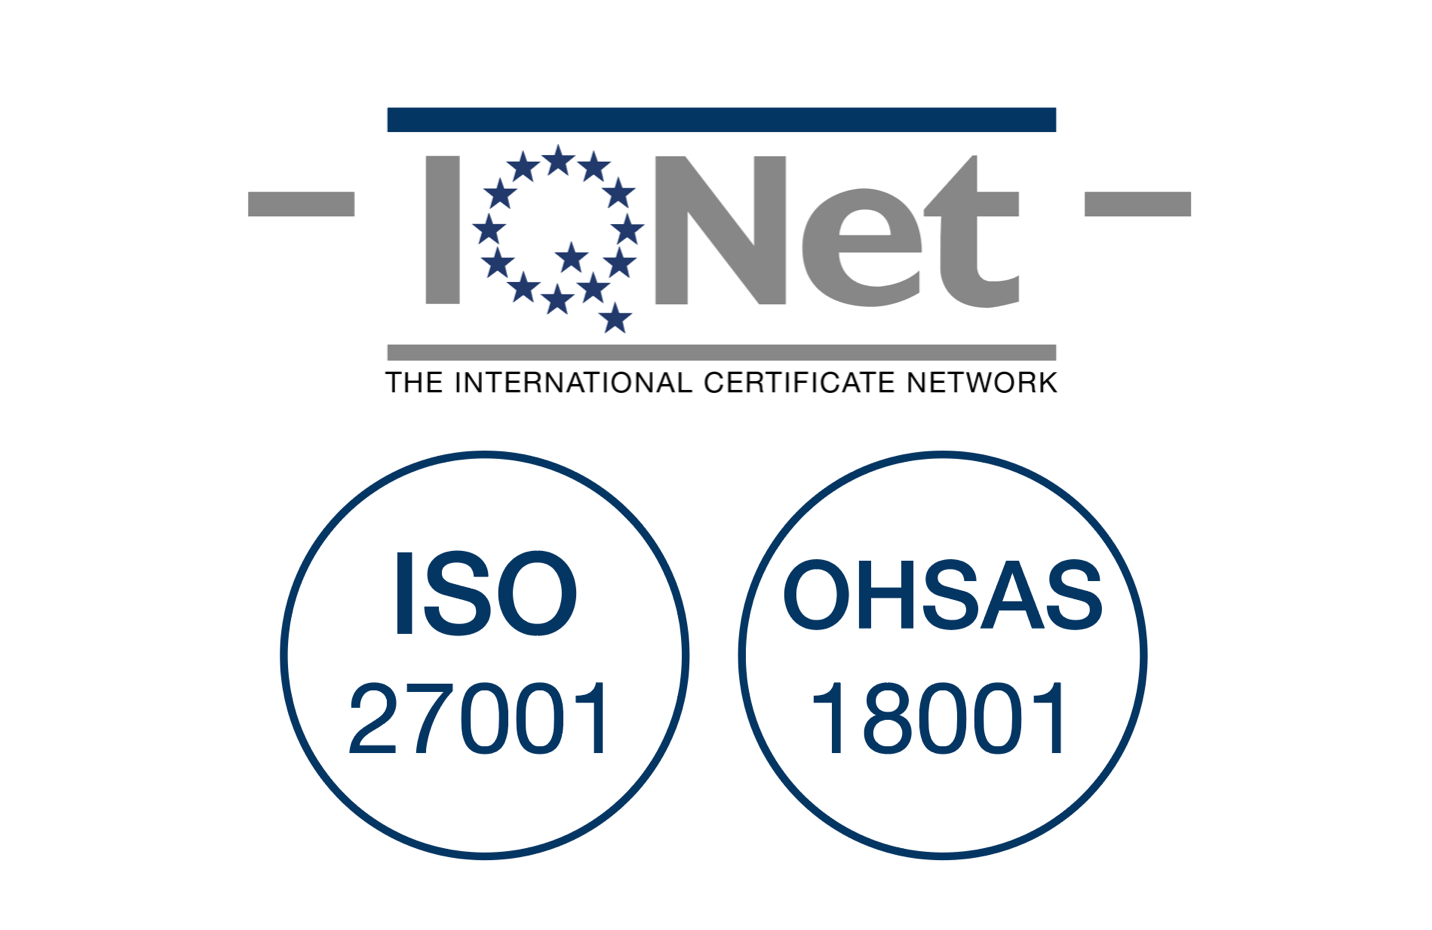 ICTS is awarded the International Organisation for Standardization - ISO 27001 and OHSAS 18001